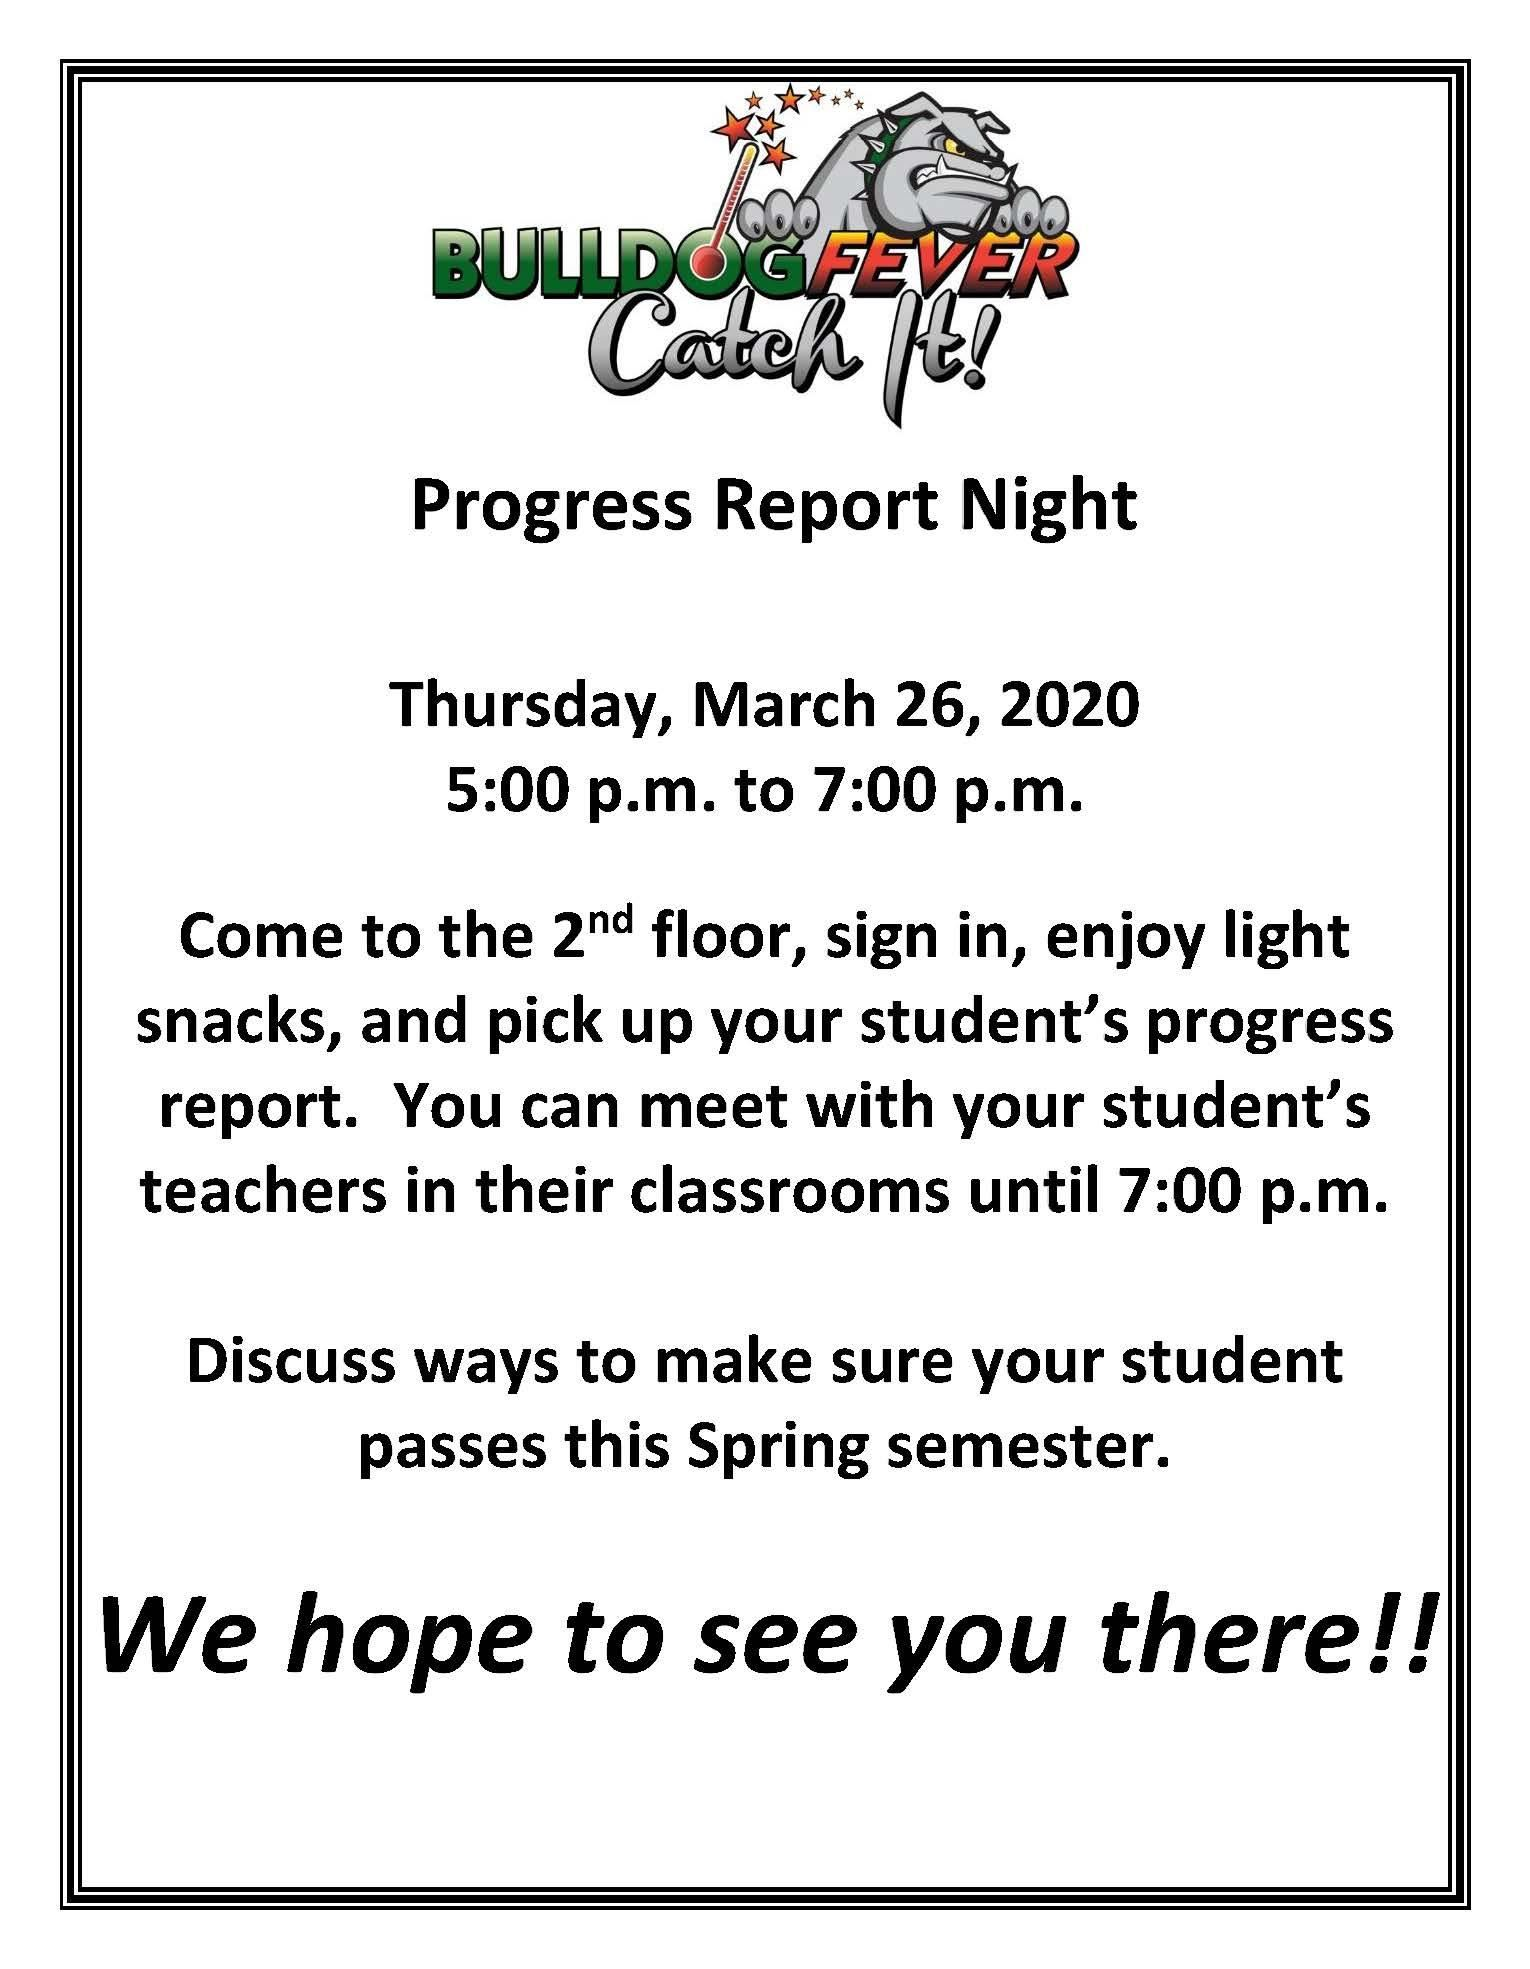 Progress Report Night